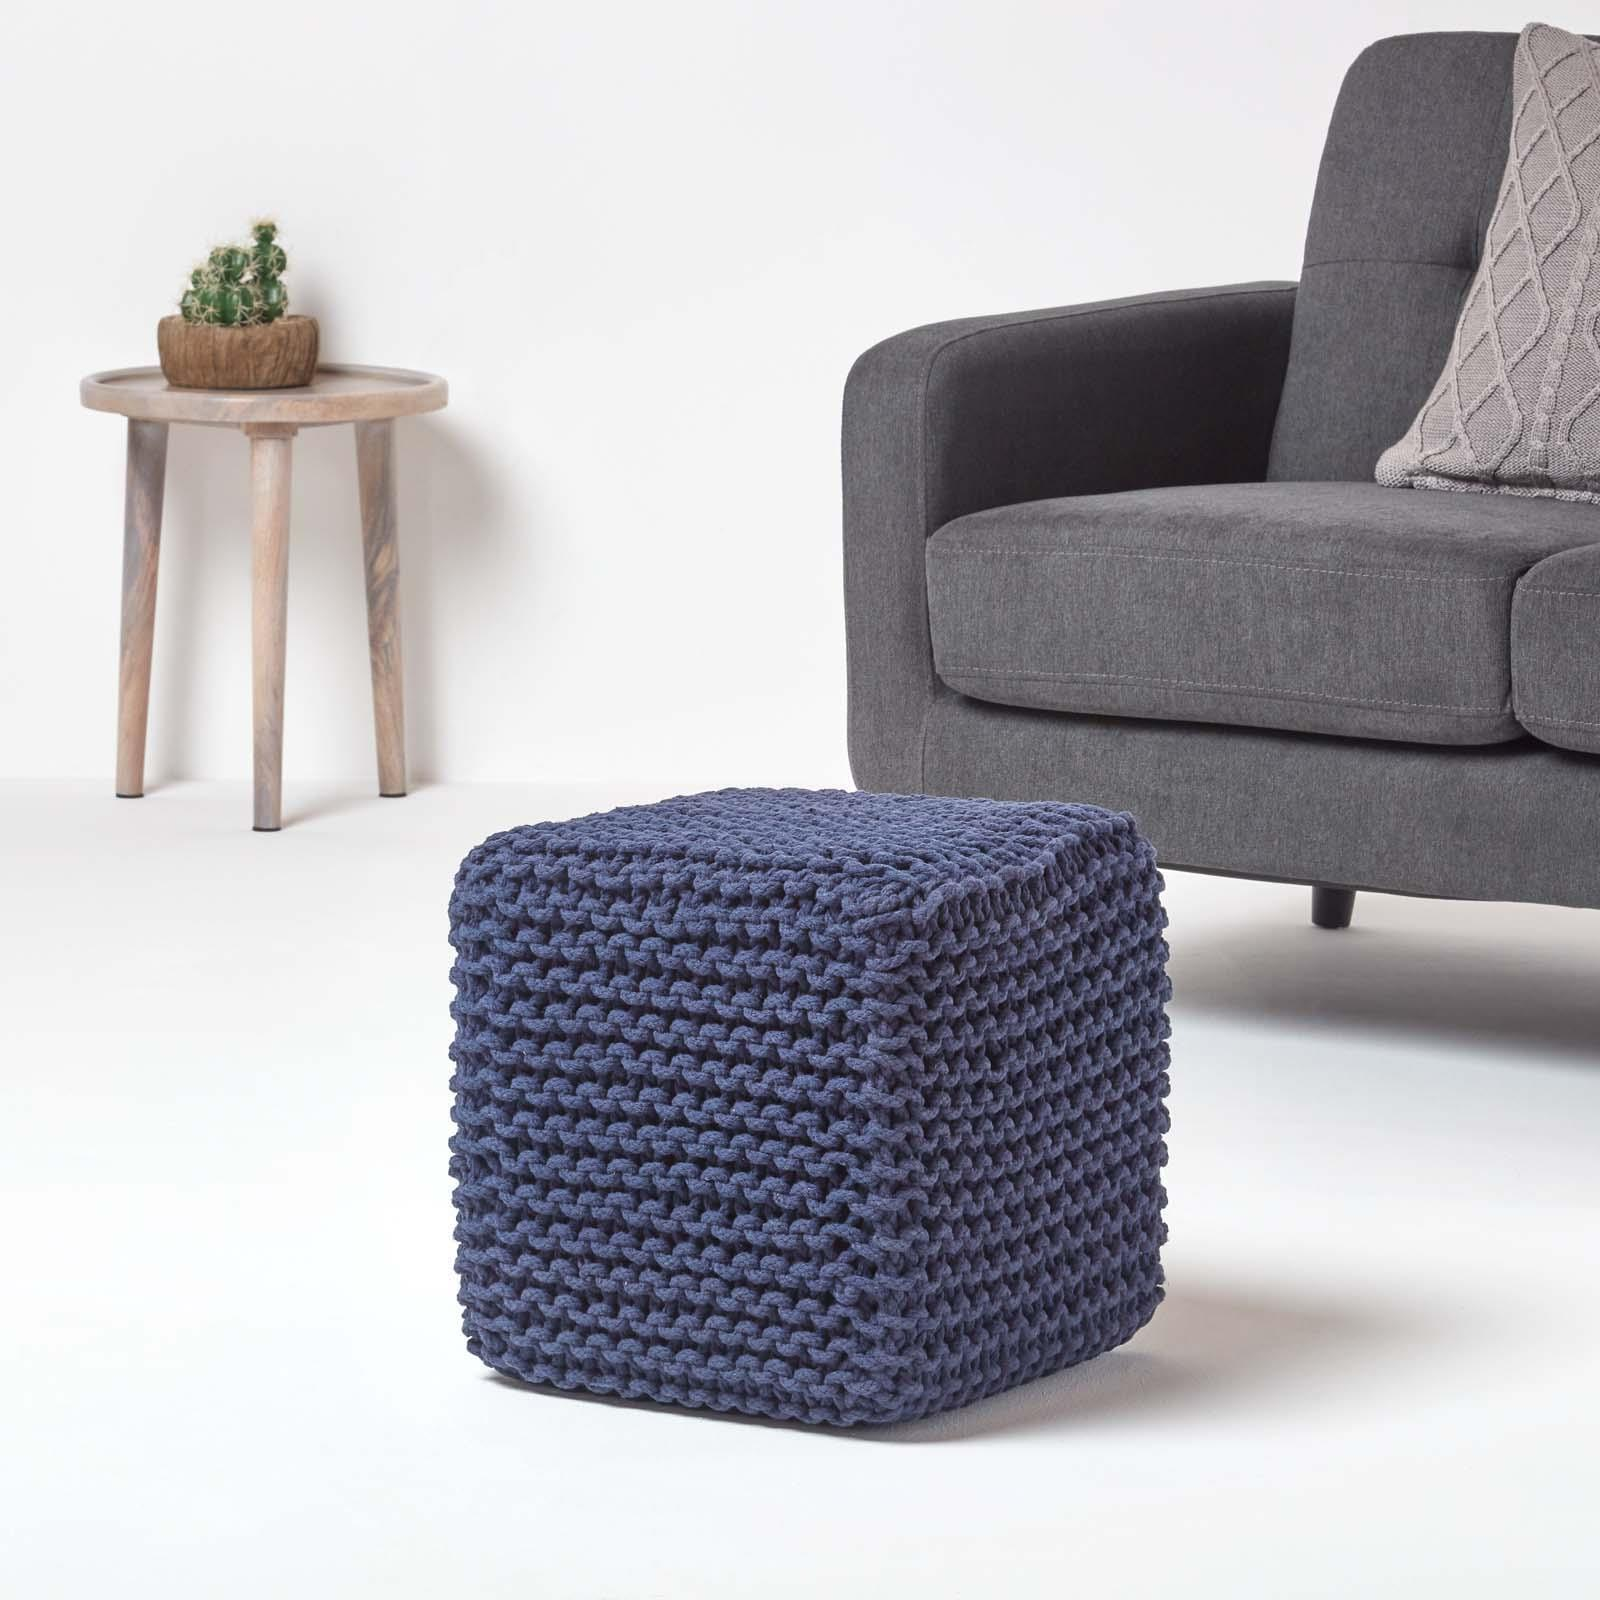 Hand-Knitted-100-Cotton-Pouffes-Round-Sphere-Or-Cube-Square-Chunky-Footstools thumbnail 110